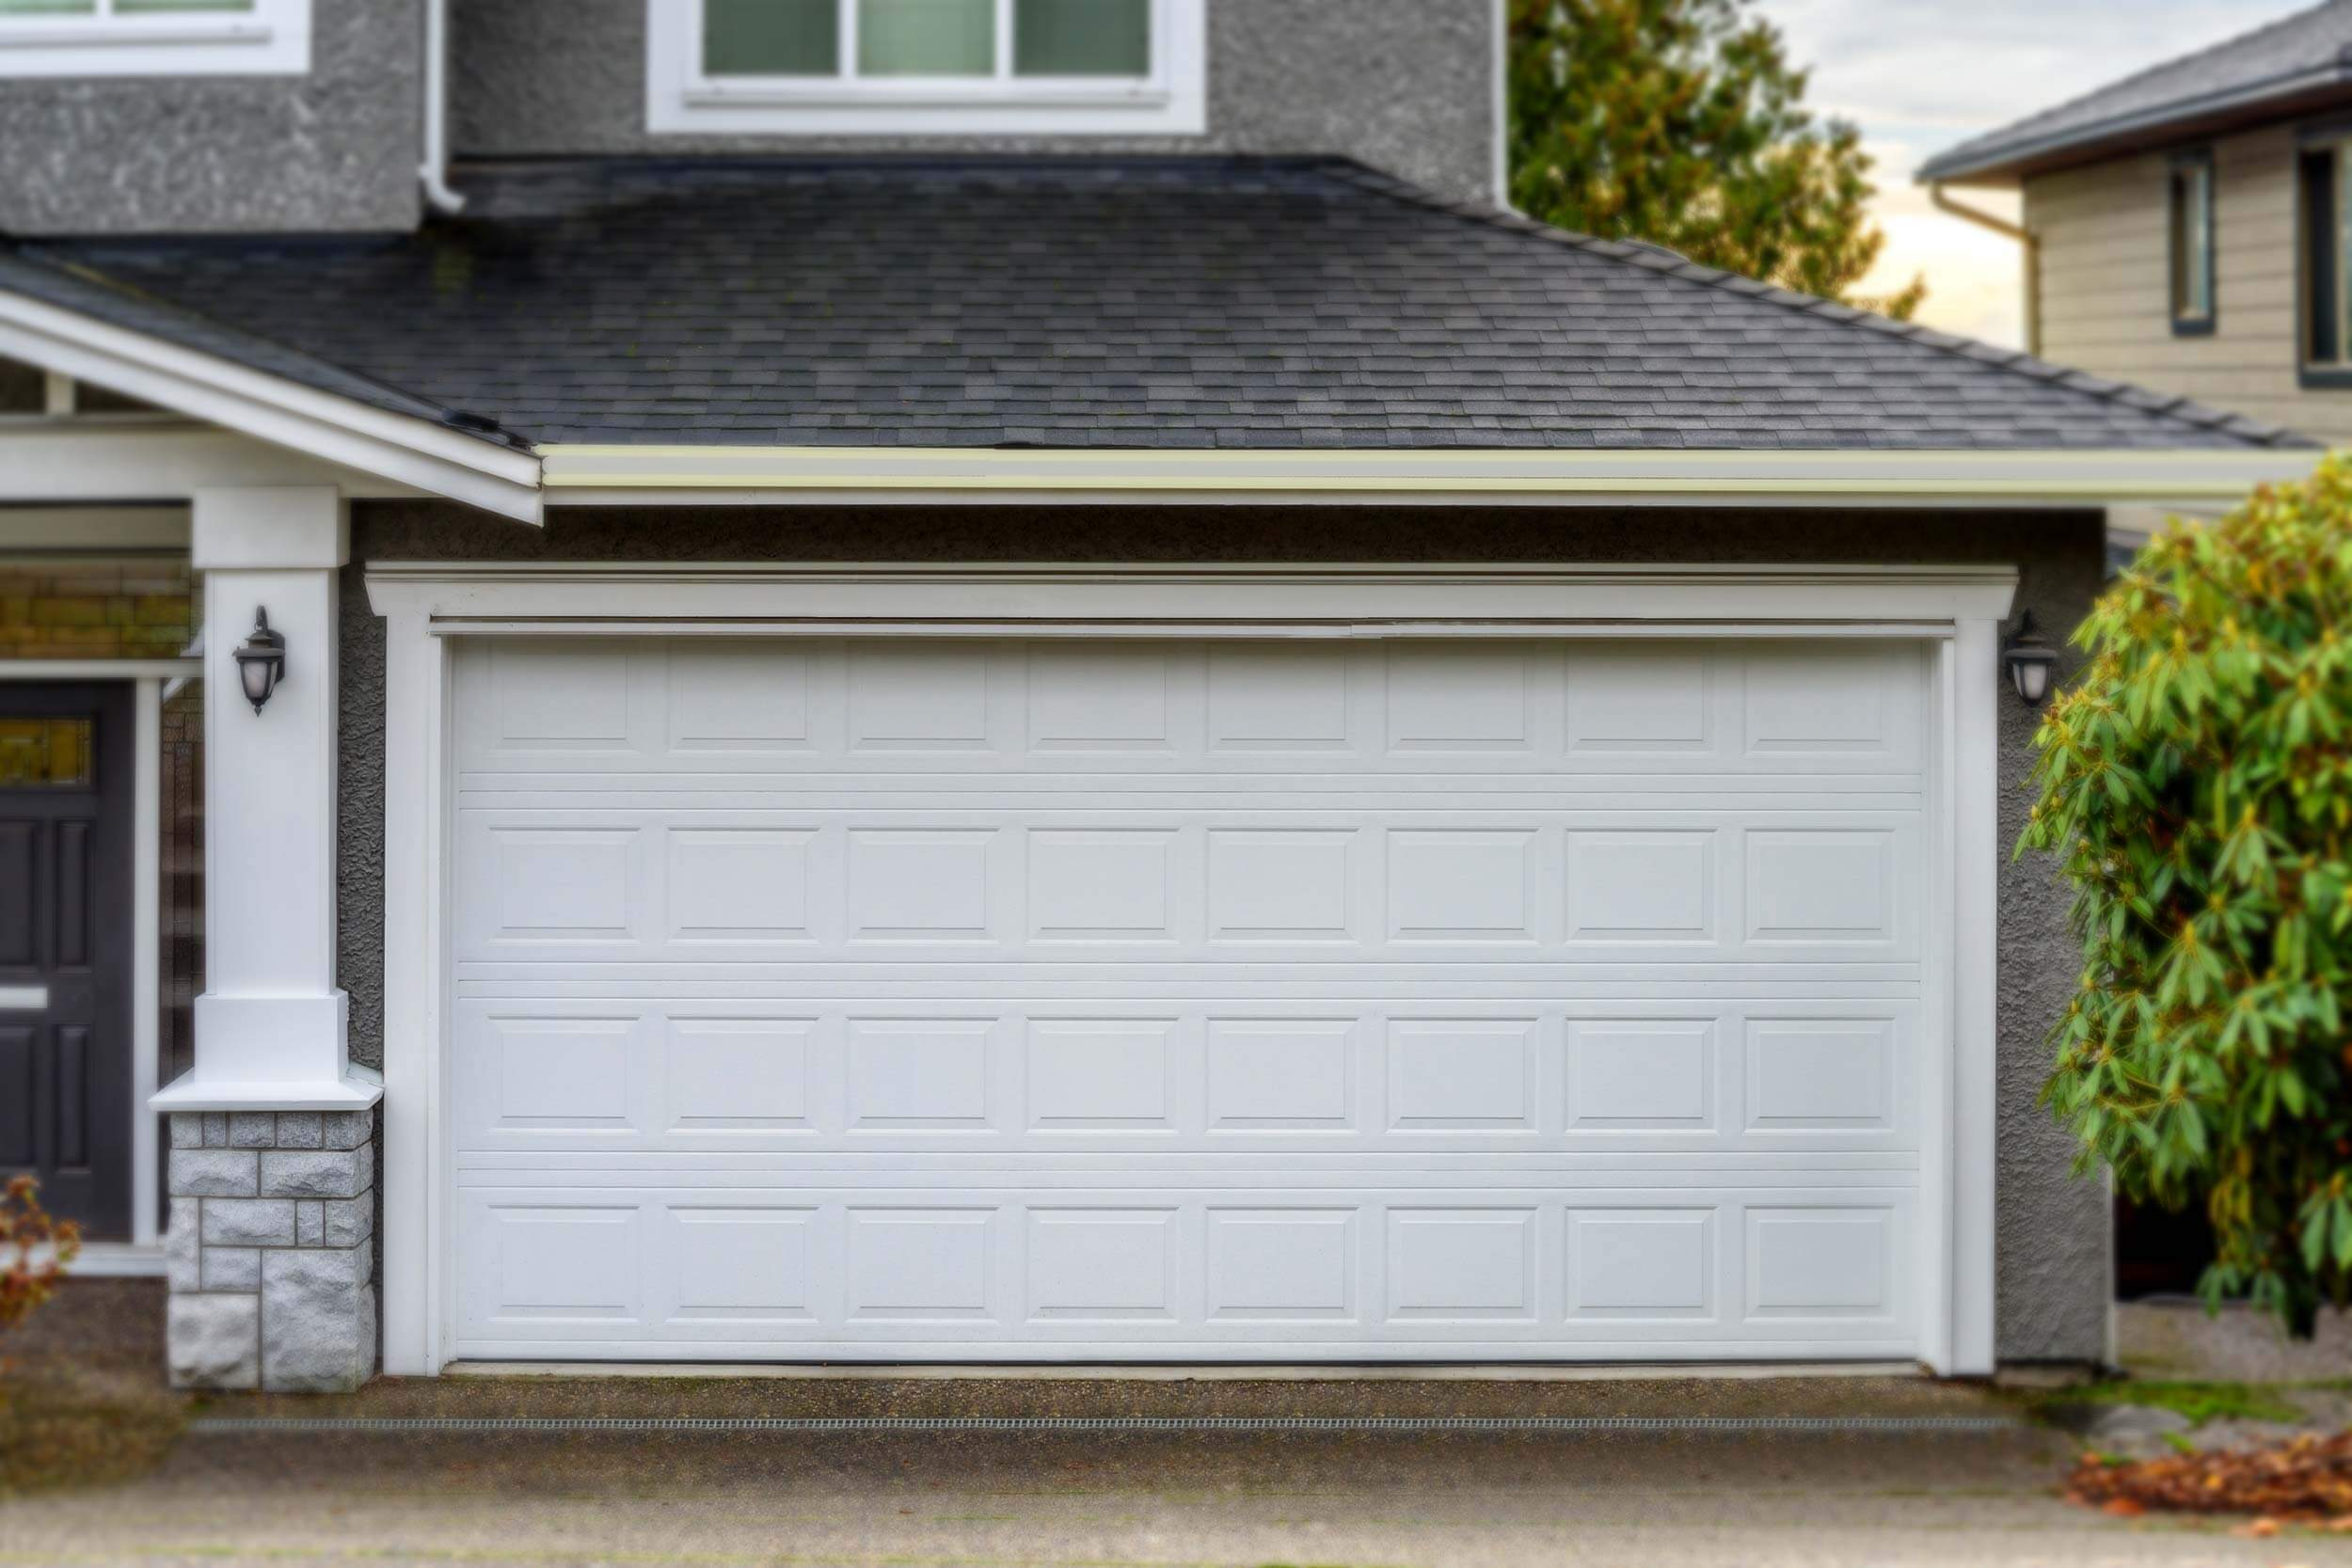 HOW TO REPLACE BATTERY REMOTE GARAGE DOOR